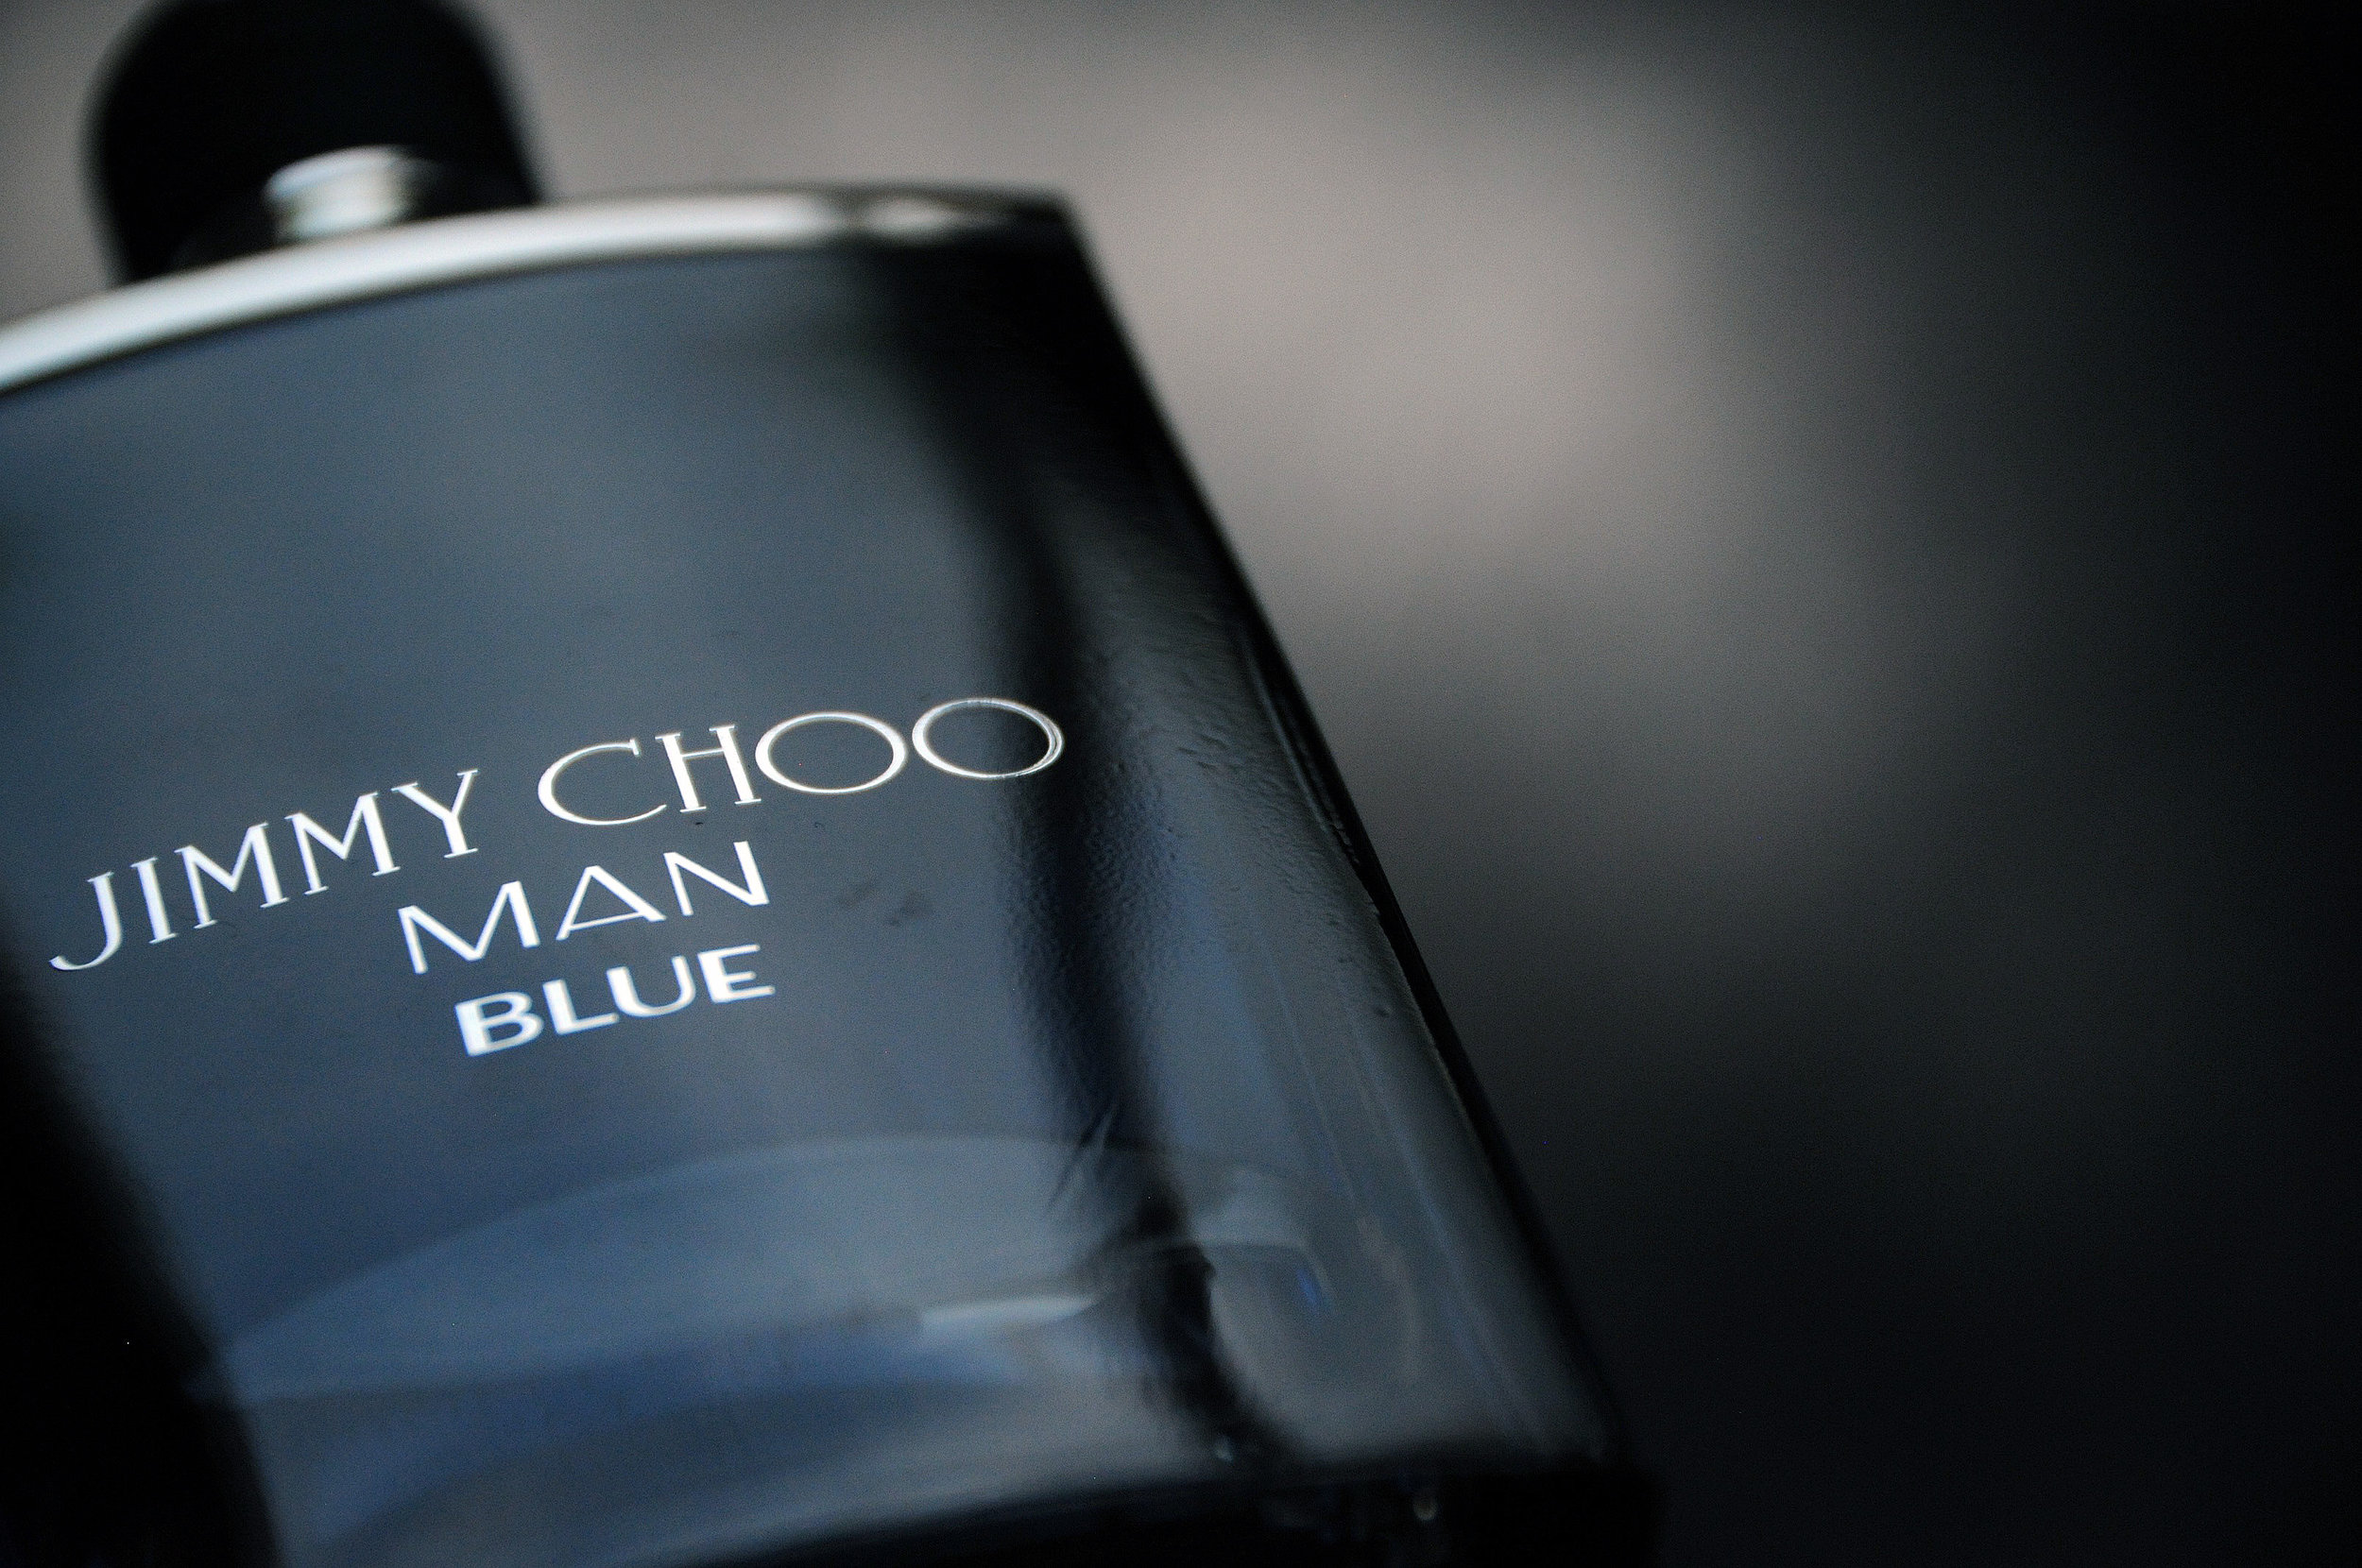 Review — Choo Blog Man BlueFragrance Jimmy Style Men's IWH29bEDeY